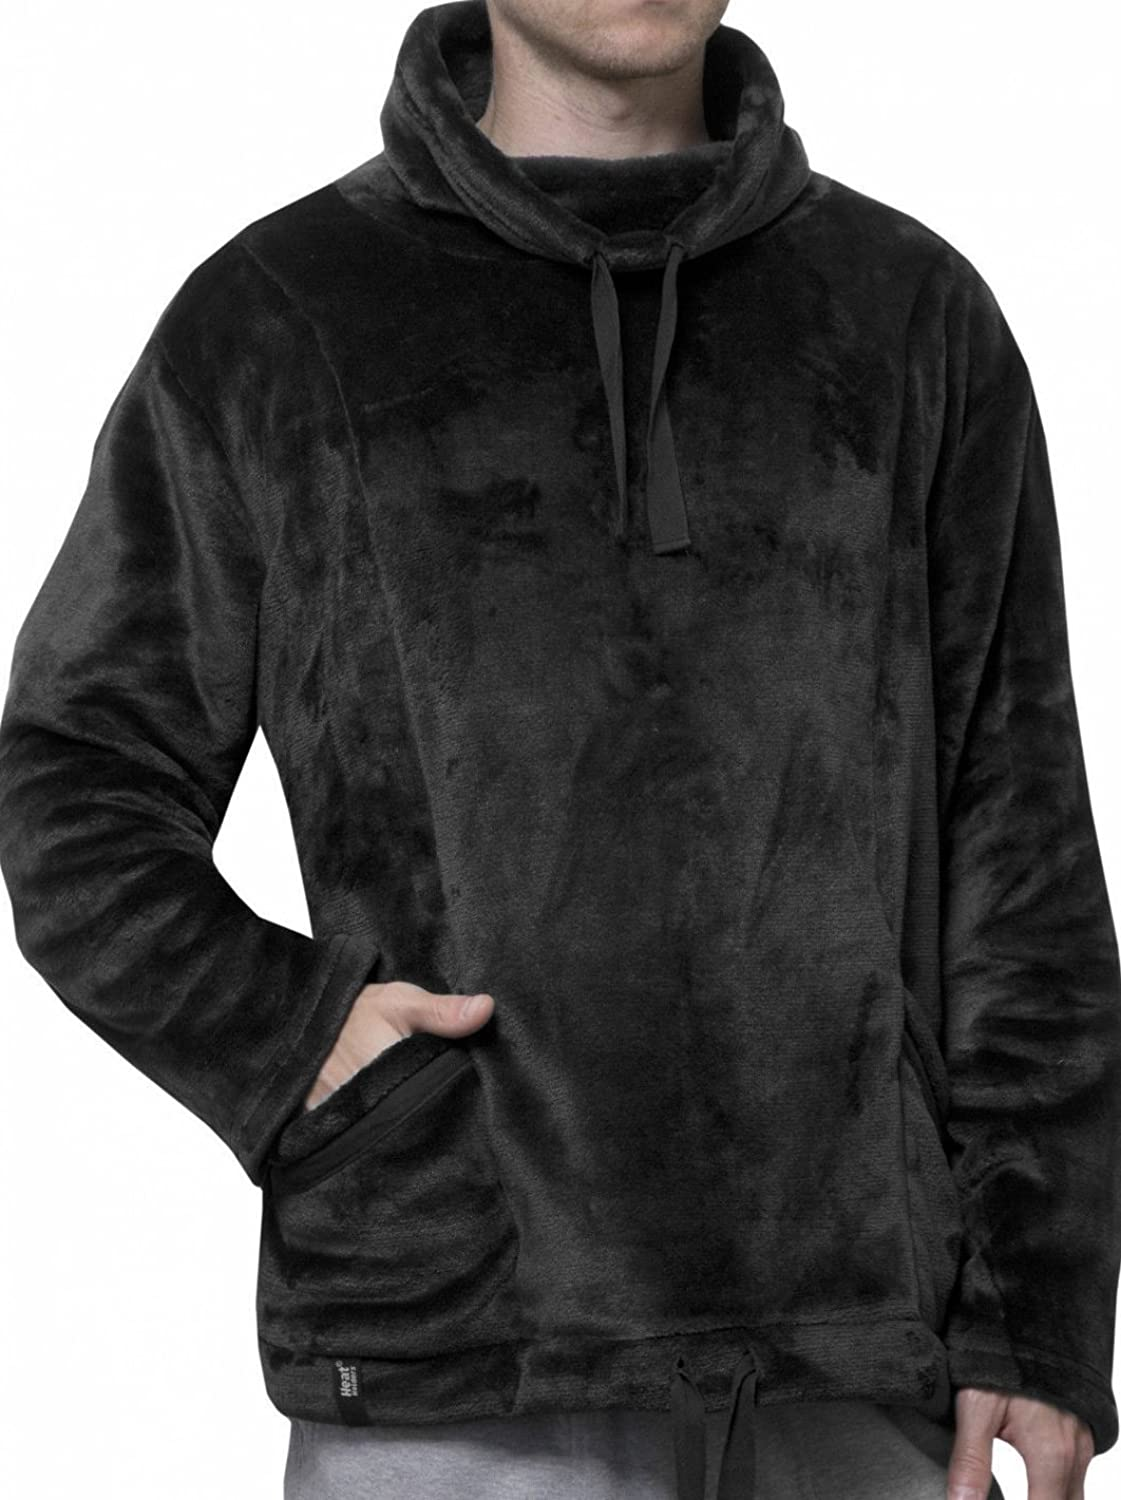 """1 no. Mens 1.4 tog Thermal Winter Warm Heat Holders Snugover Fleece Jumper In Black S/M - 34"""" x 38"""" Chest"""